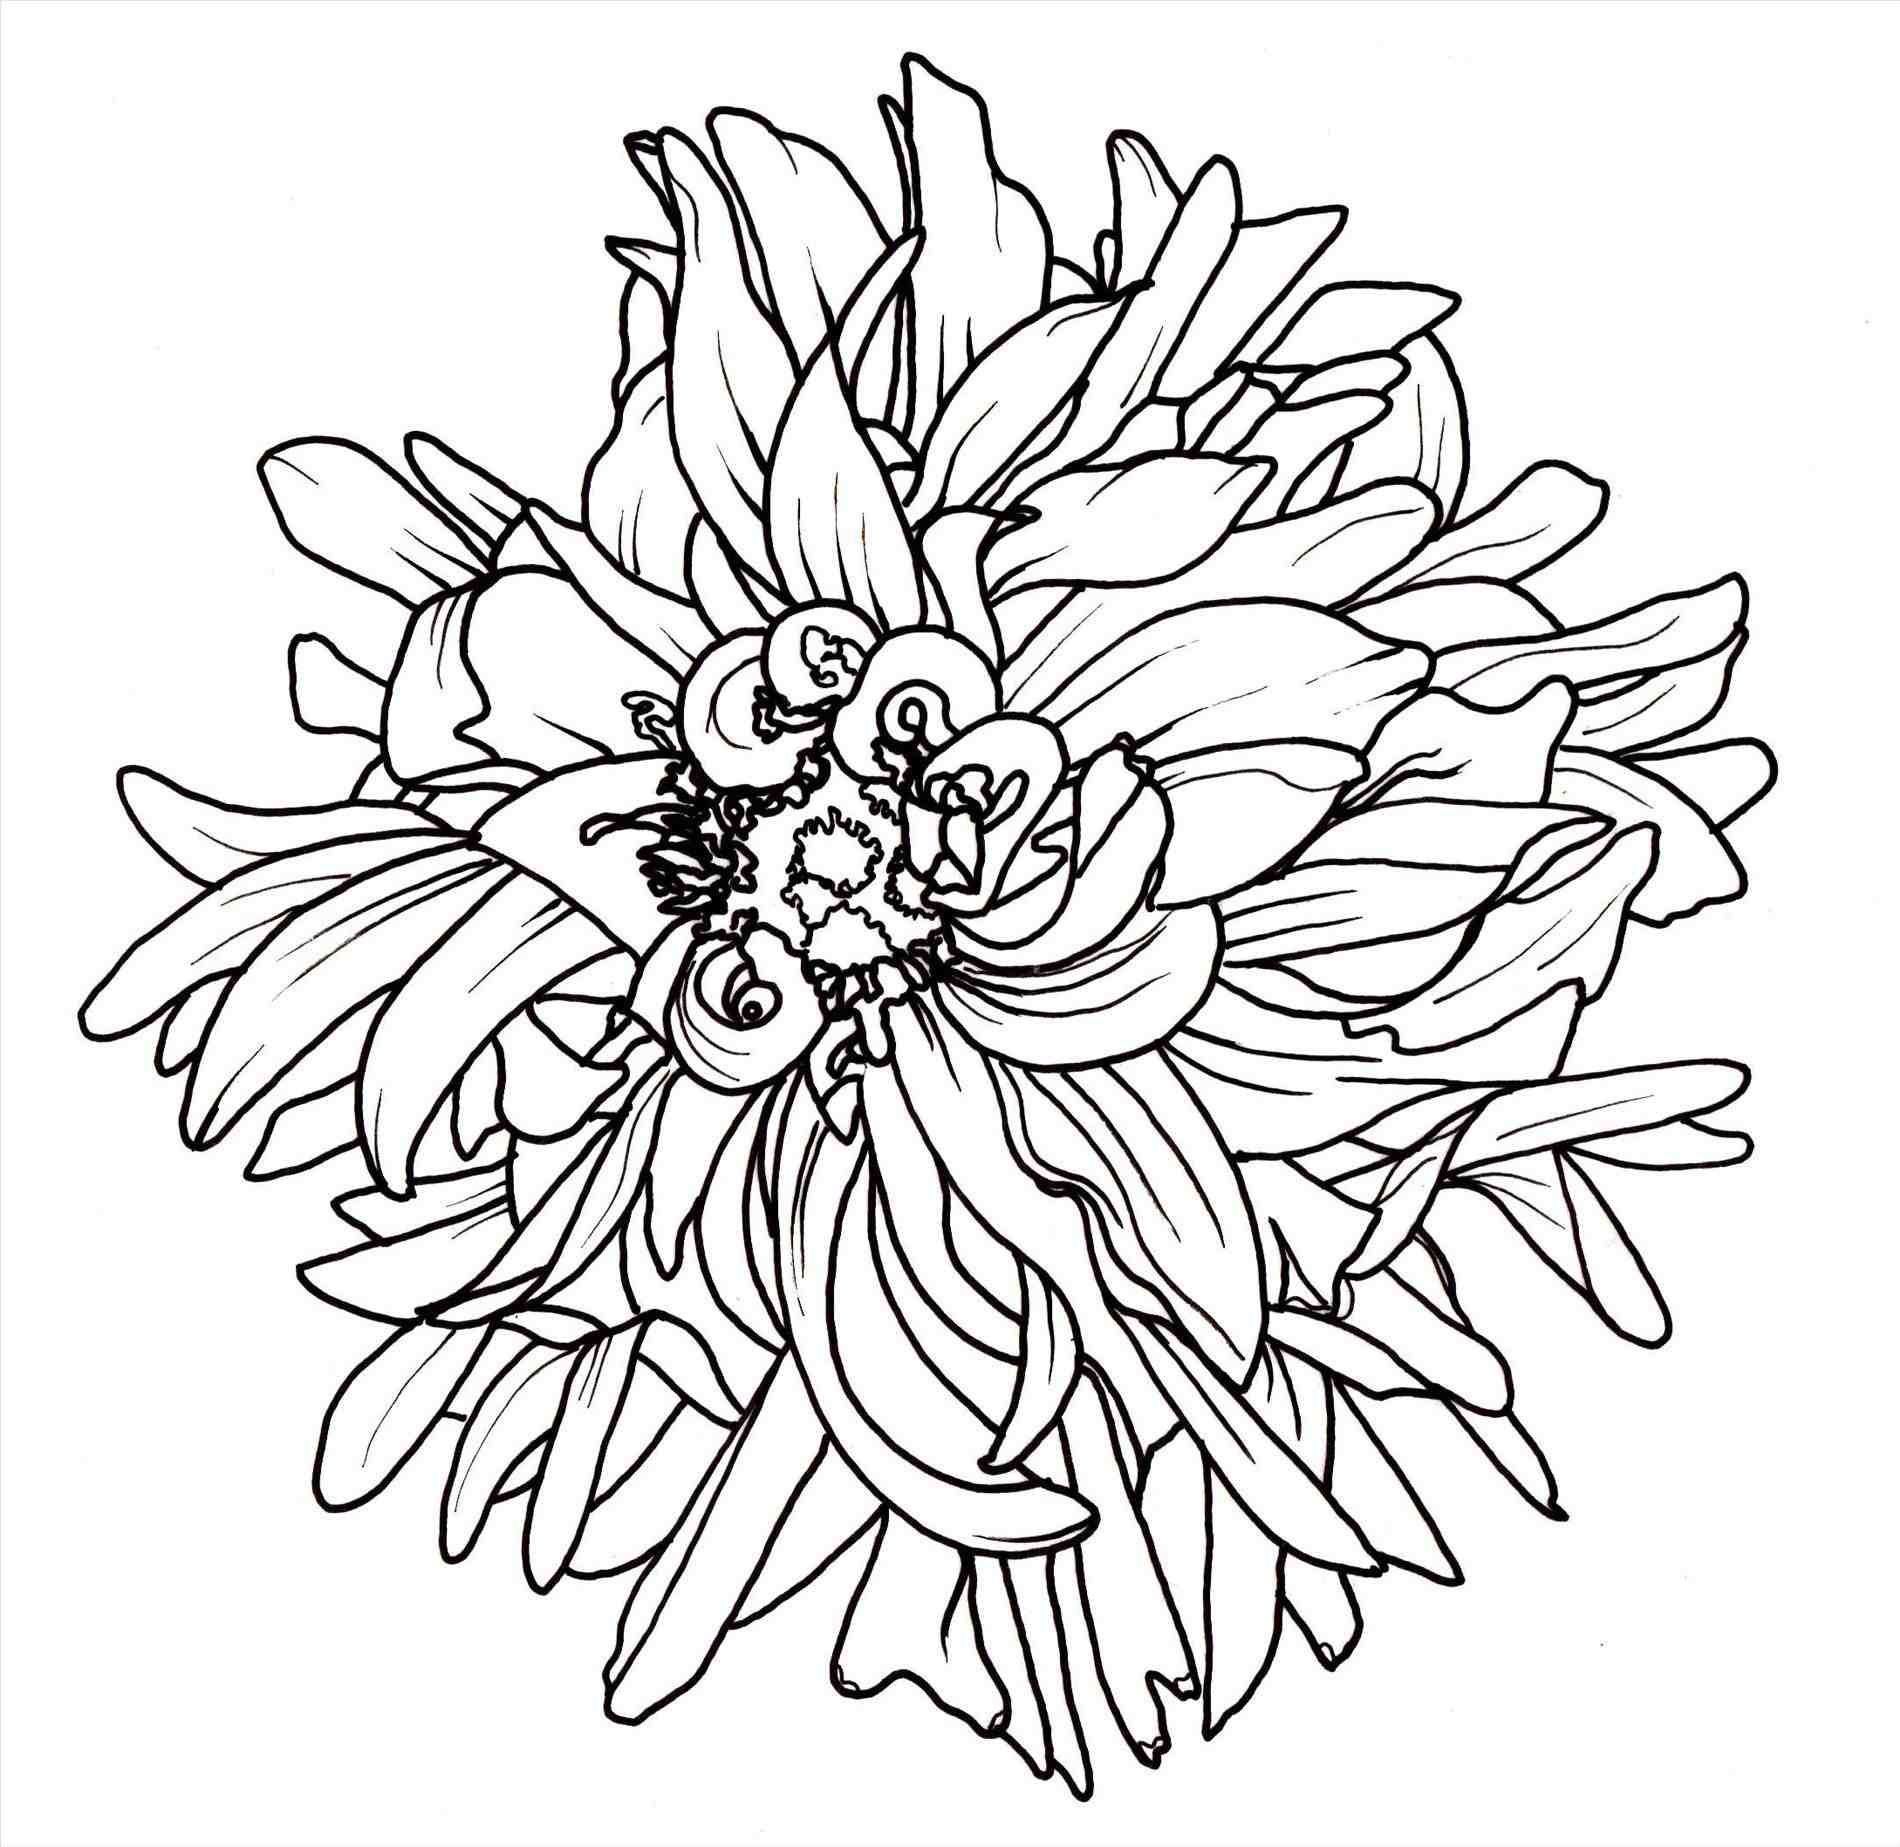 Tumblr flower drawing at getdrawings free for personal use 1900x1847 flower drawing easy tumblr mightylinksfo